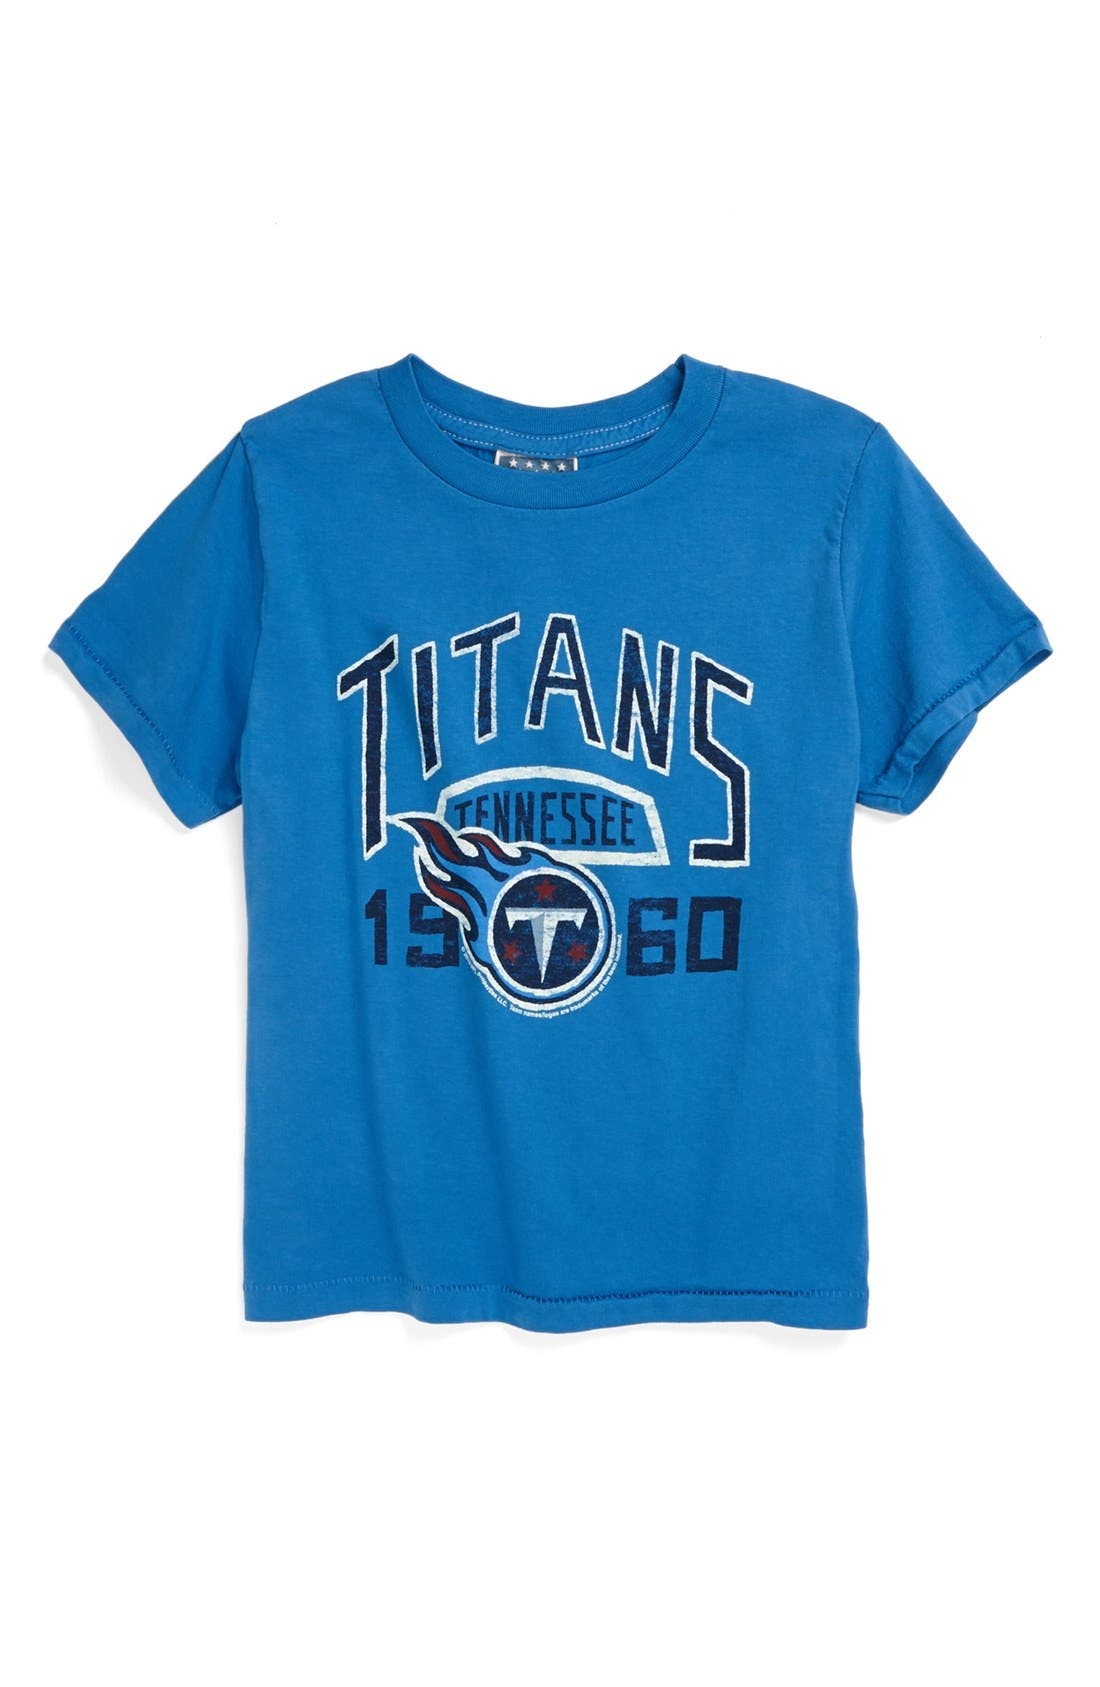 Alternate Image 1 Selected - Junk Food 'Tennessee Titans' T-Shirt (Toddler Boys)